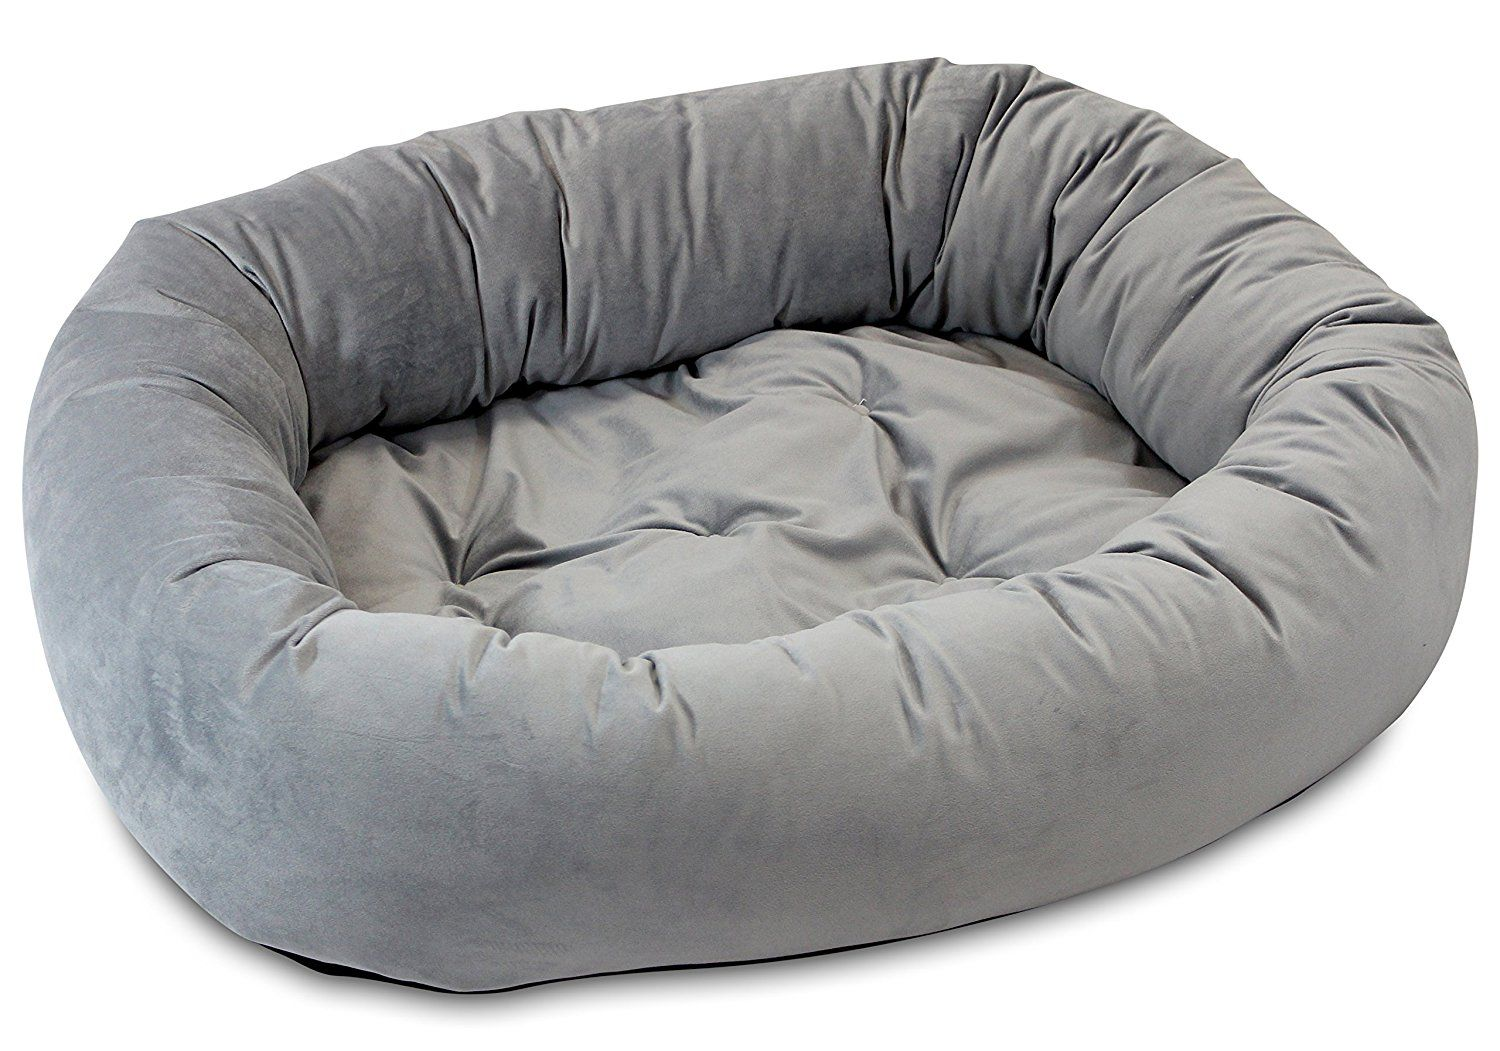 Oliver And Iris Bolster Donut Lounge Dog Bed Details Can Be Found By Clicking On The Image Dog Lounge Bed Dog Bed Dog Bed Large